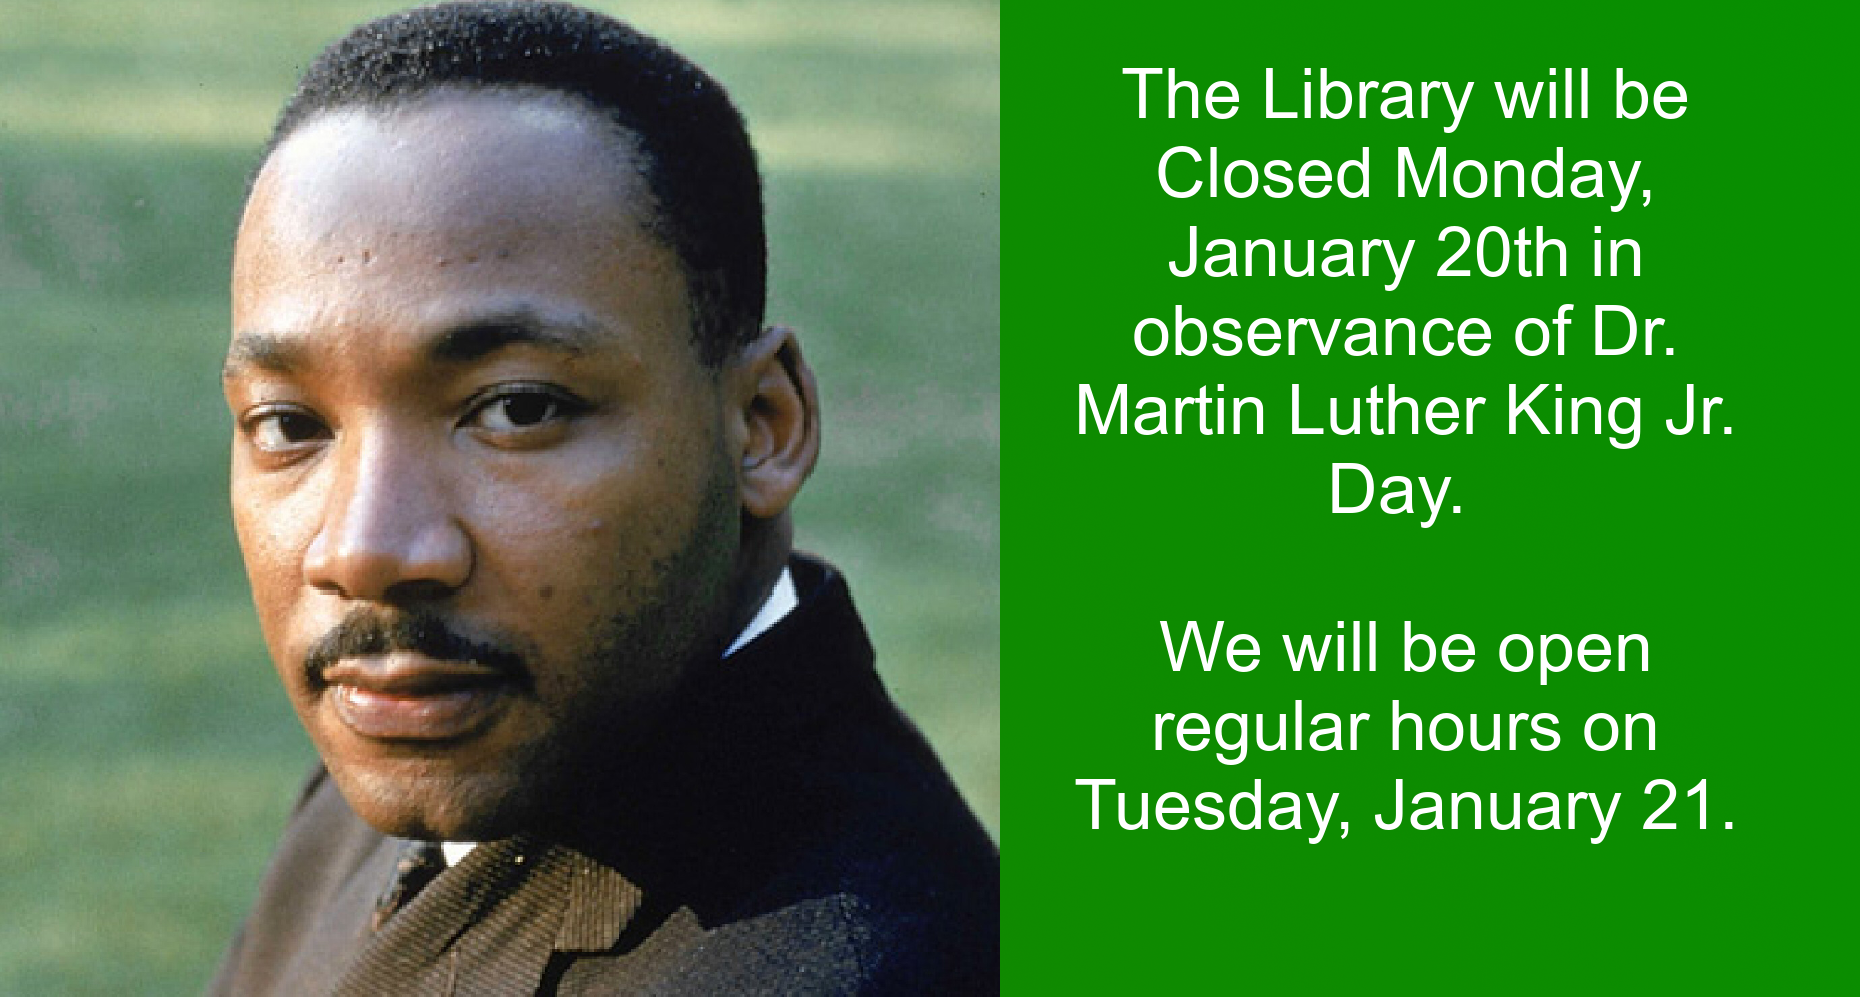 The library will be closed on Monday, January 20th in observance of Martin Luther King Jr. Day.